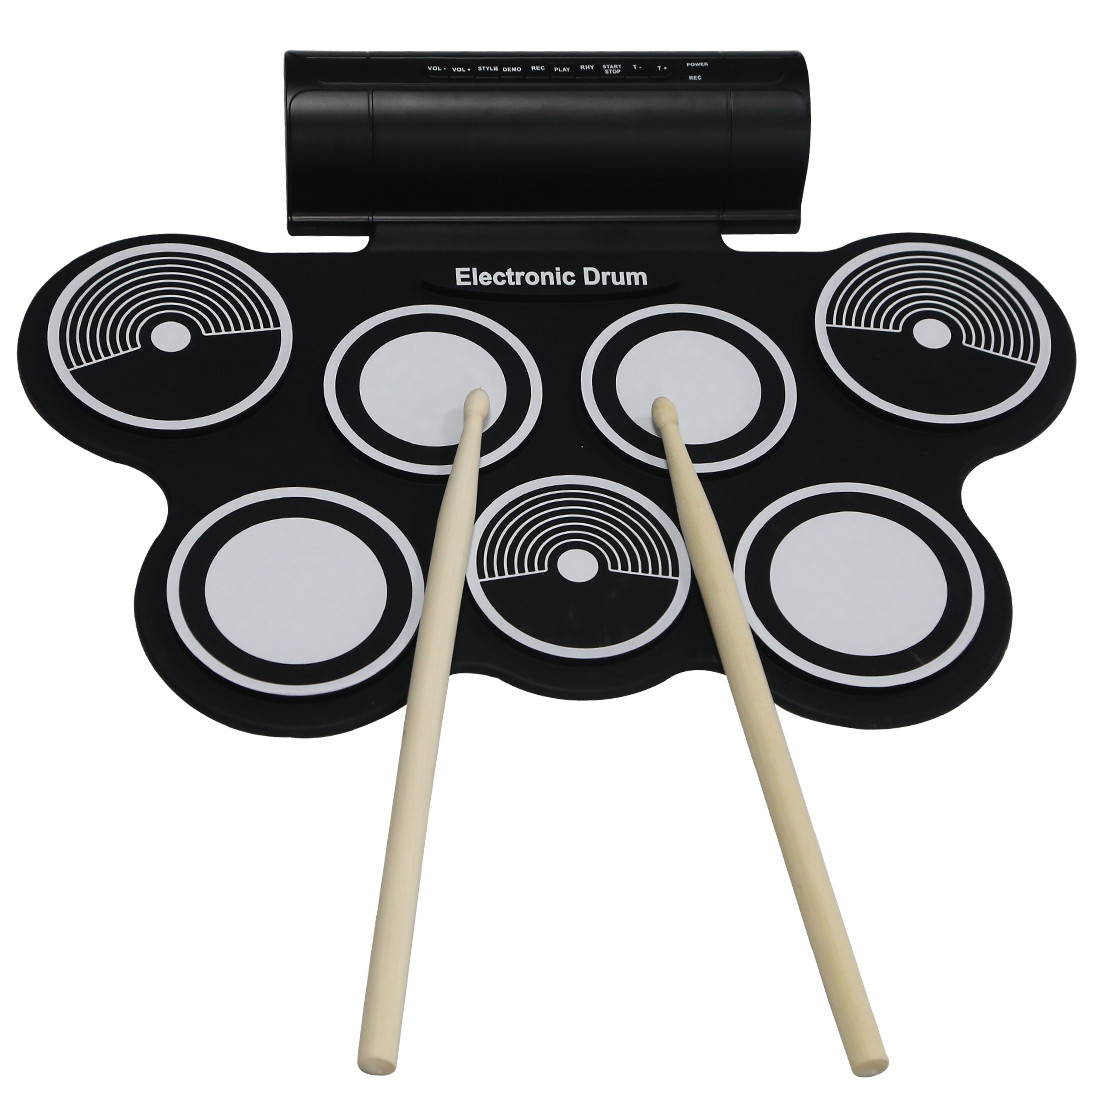 Hot Sale Portable Electronic Roll Up Drum Pad Kit USB MIDI Machine Silicone Percussion Instruments with Drumstick Foot Pedal